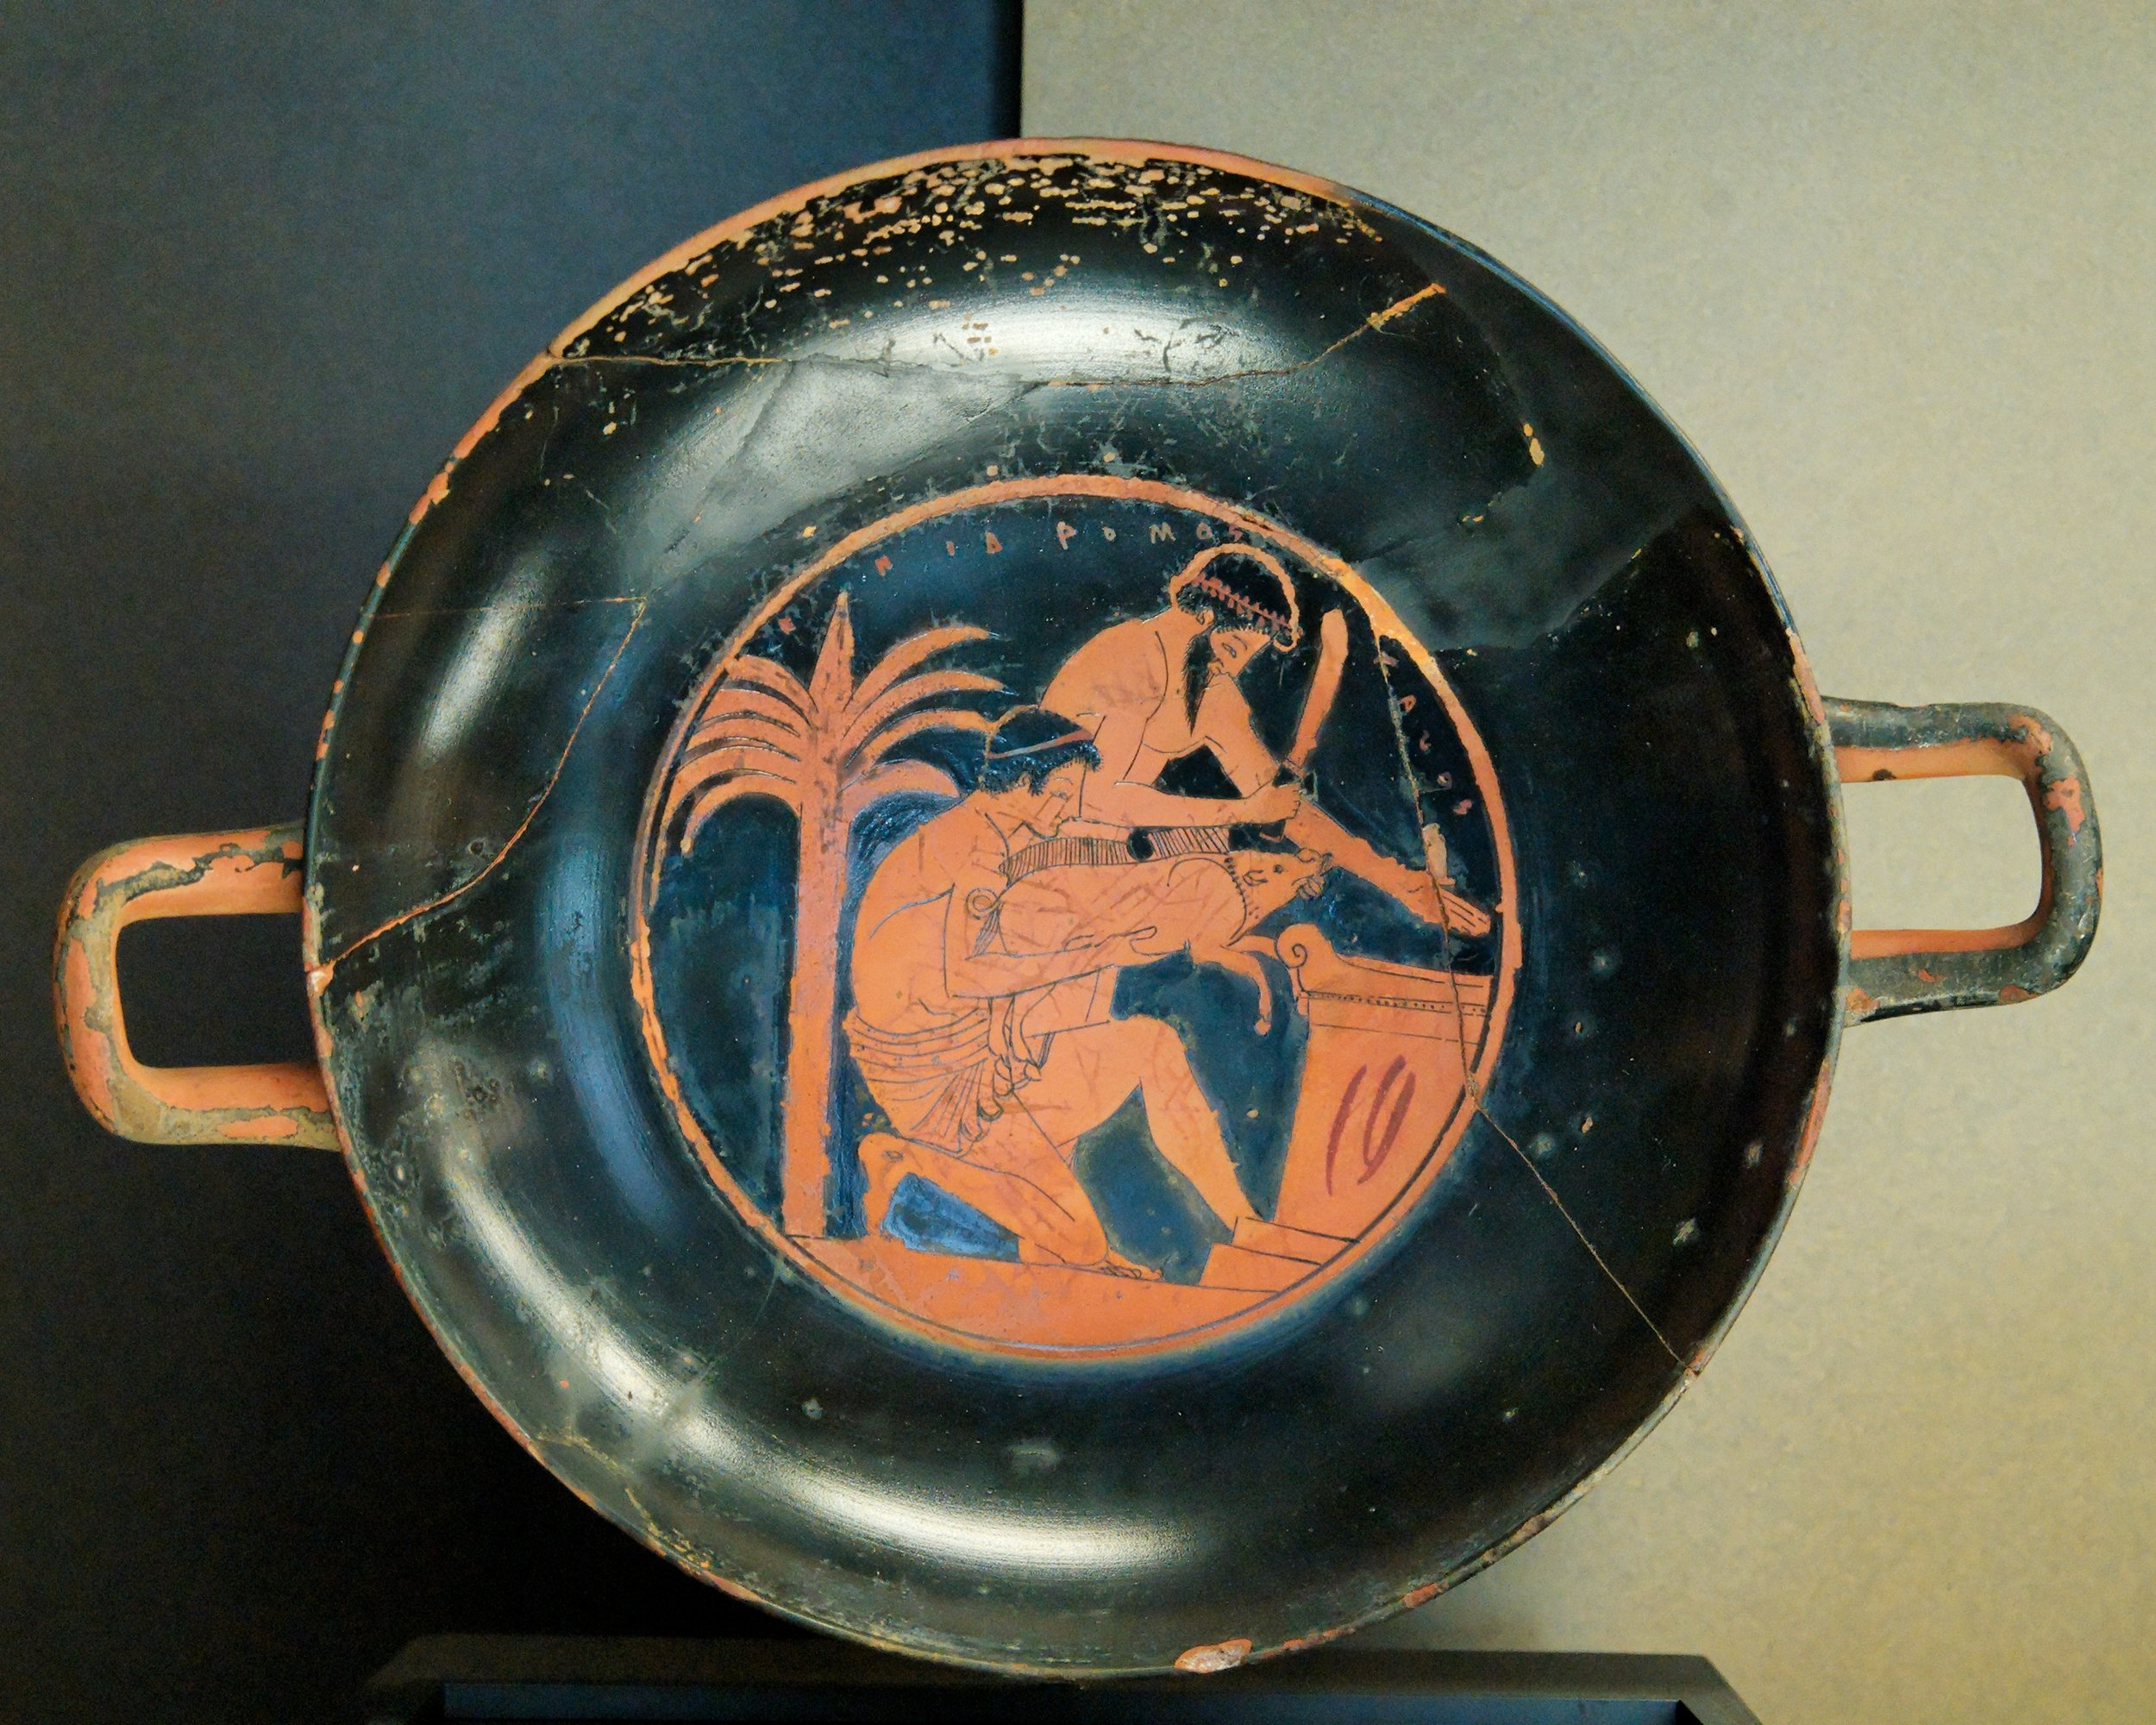 Epidromos Painter, Photographer: Jastrow,  Kylix sacrifice boar Louvre G112 , 7 June 2008, CC BY 2.5  Sacrifice of a young boar. Tondo (art) from an Attic red-figure cup, ca. 510 BC–500 BC.   Food for thought: the fact that these rituals were painted or engraved on vases/cups shows the importance of sacrificial practices to the ancient Greeks.